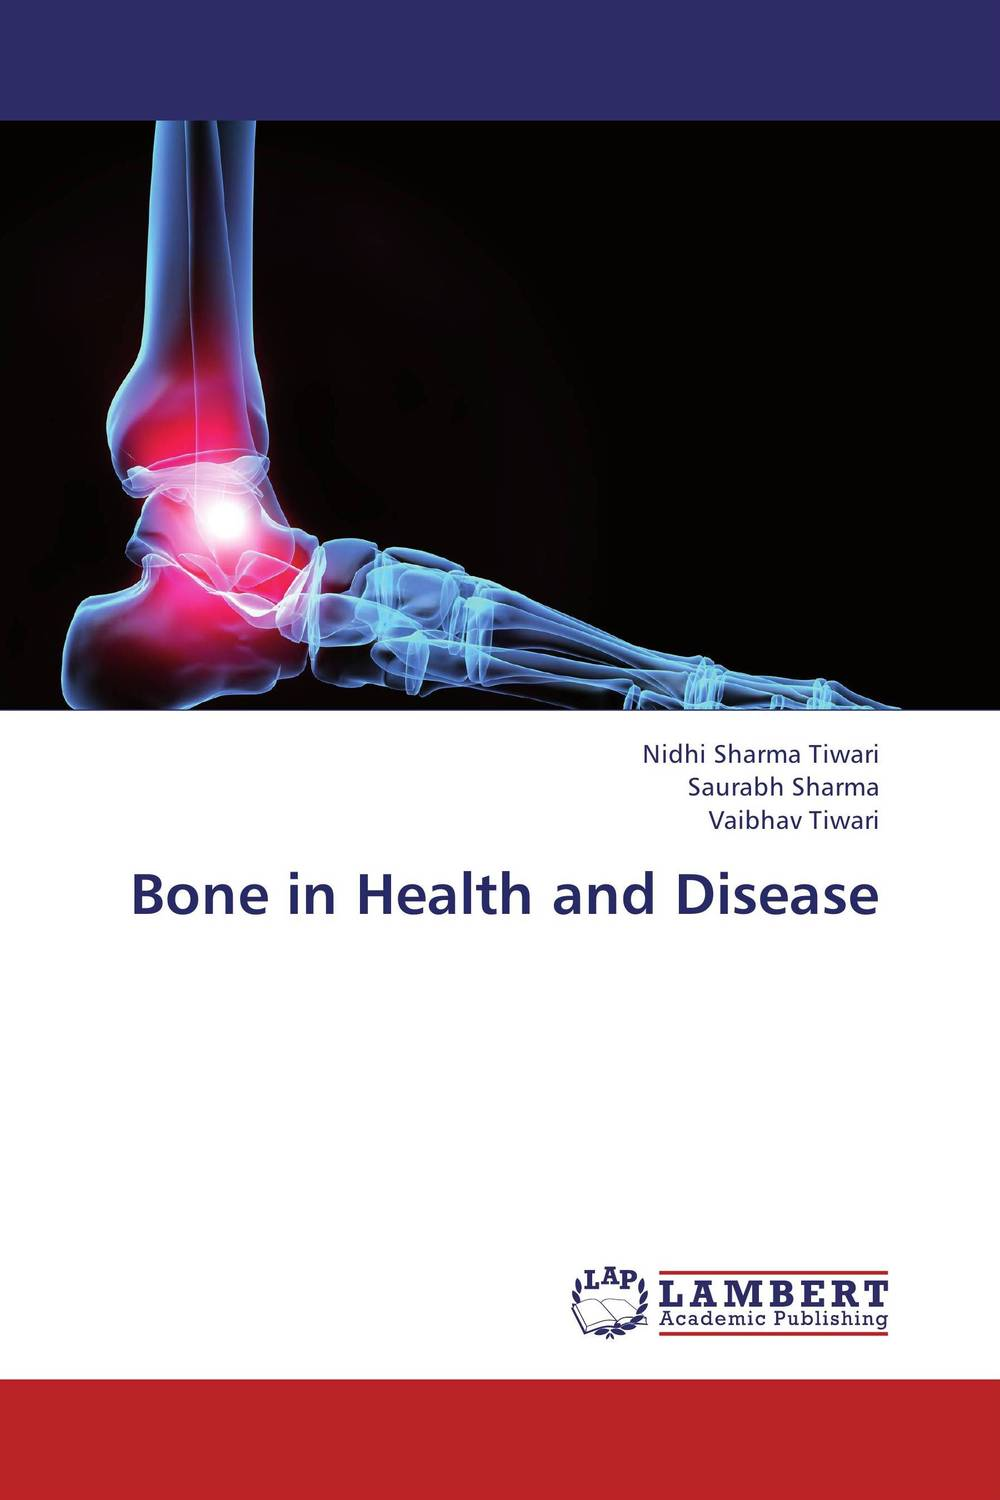 Bone in Health and Disease factors associated with bone health in young adults